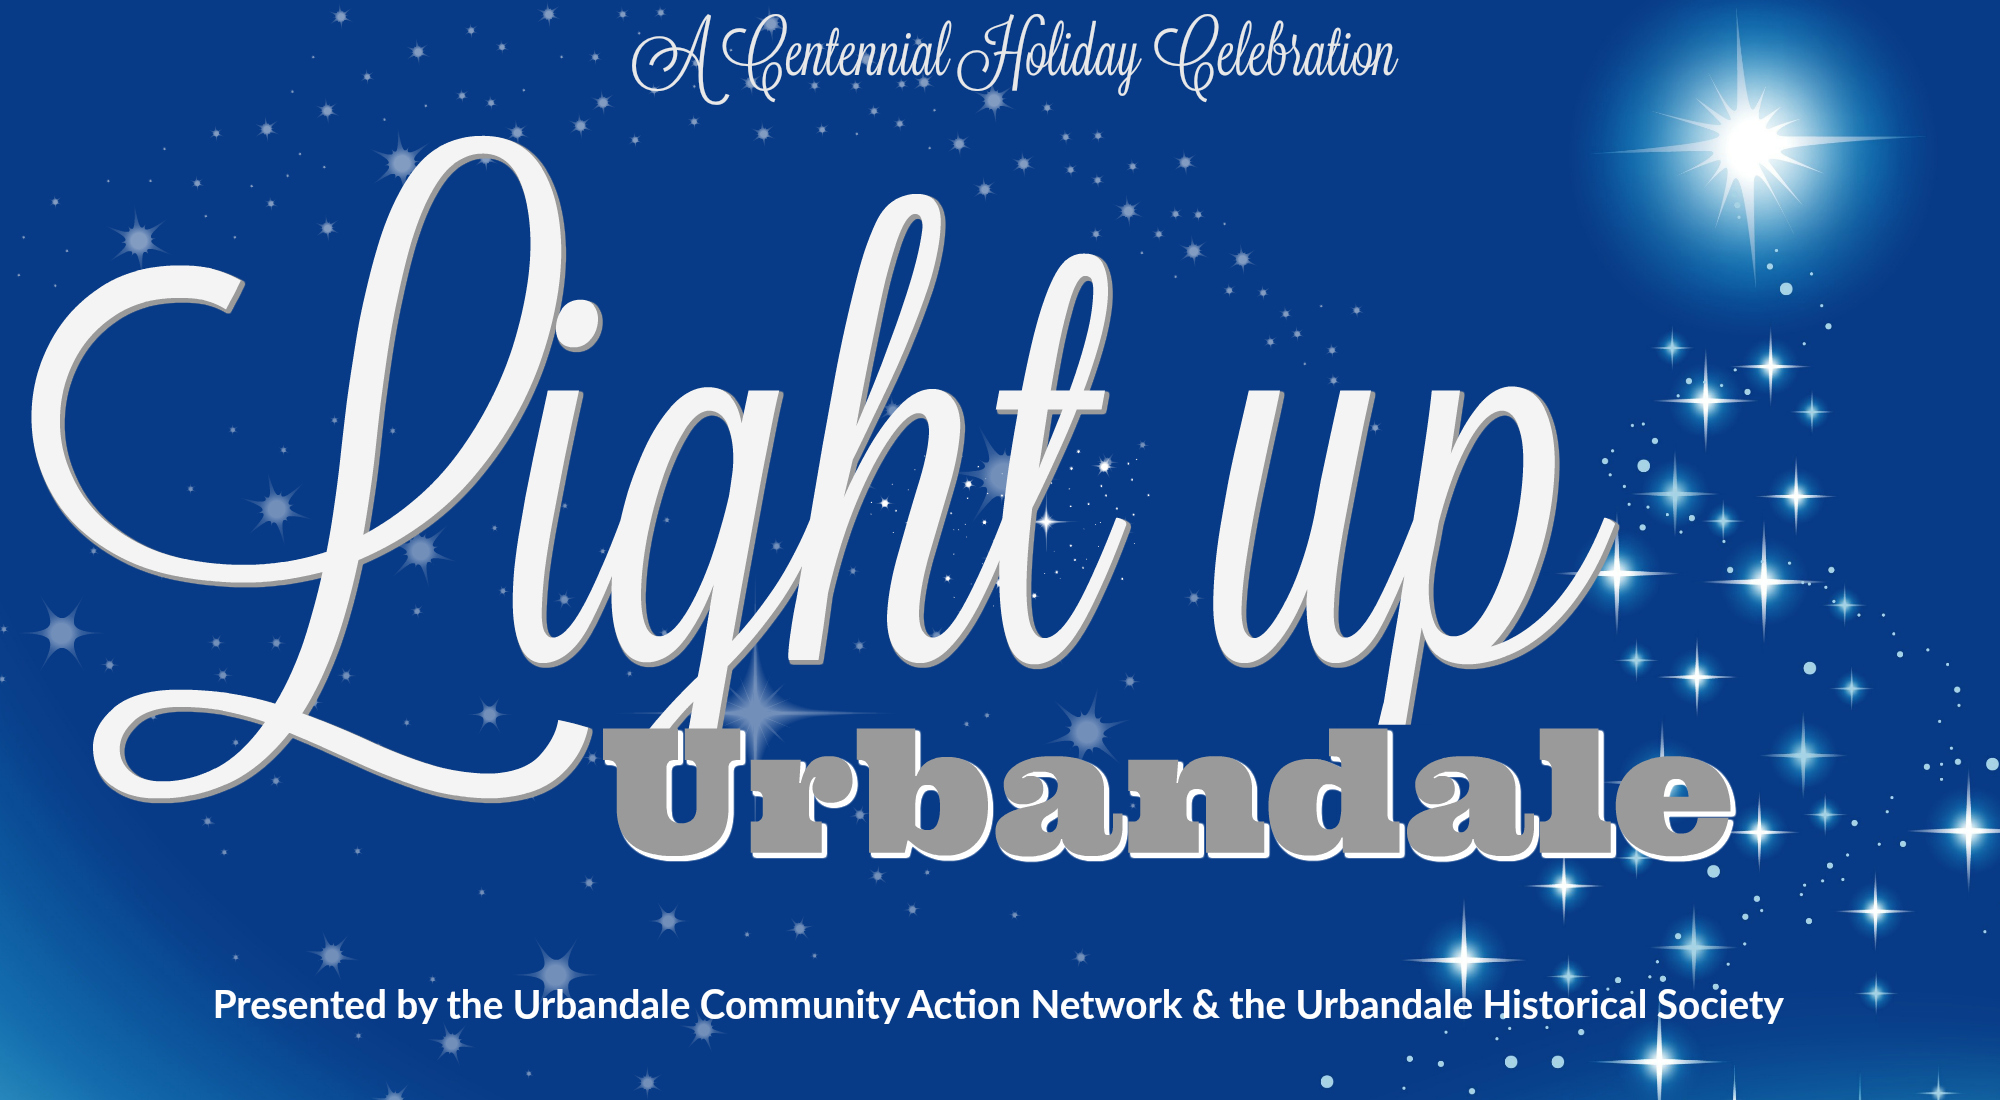 Light Up Urbandale!